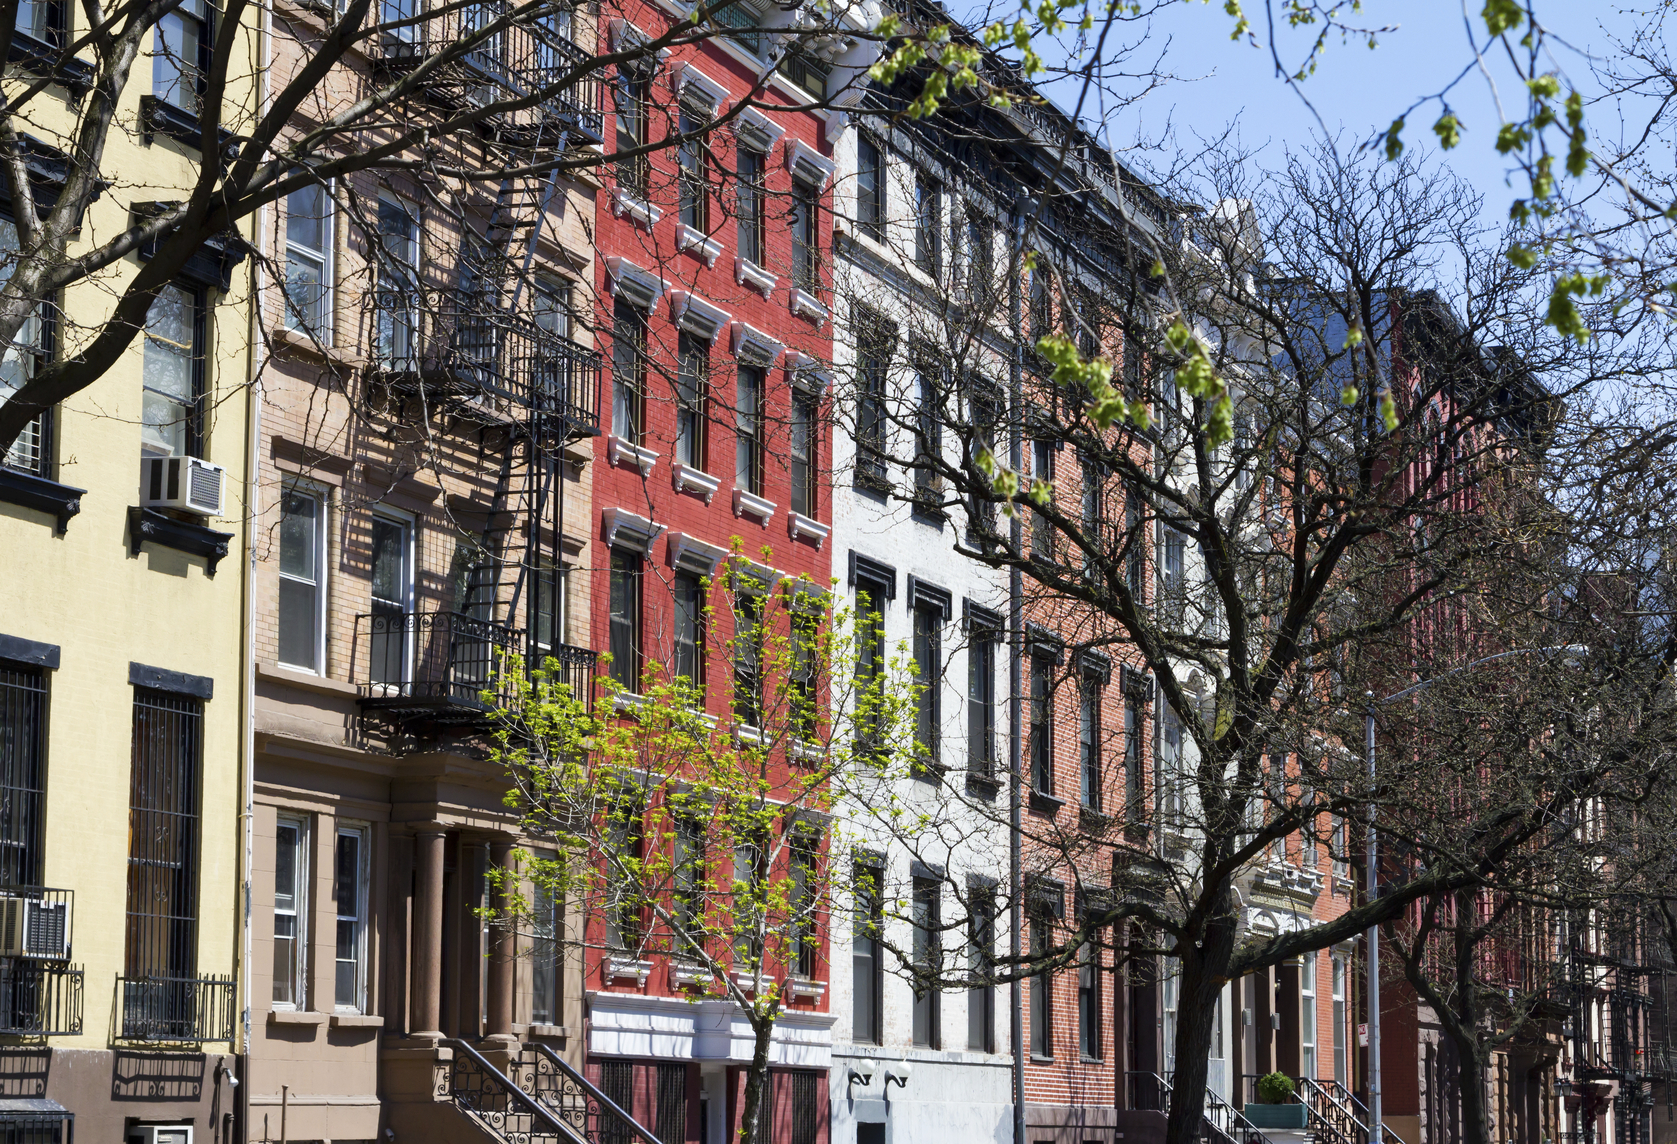 Row of buildings on a block near Tompkins Square Park in Manhattan, New York City